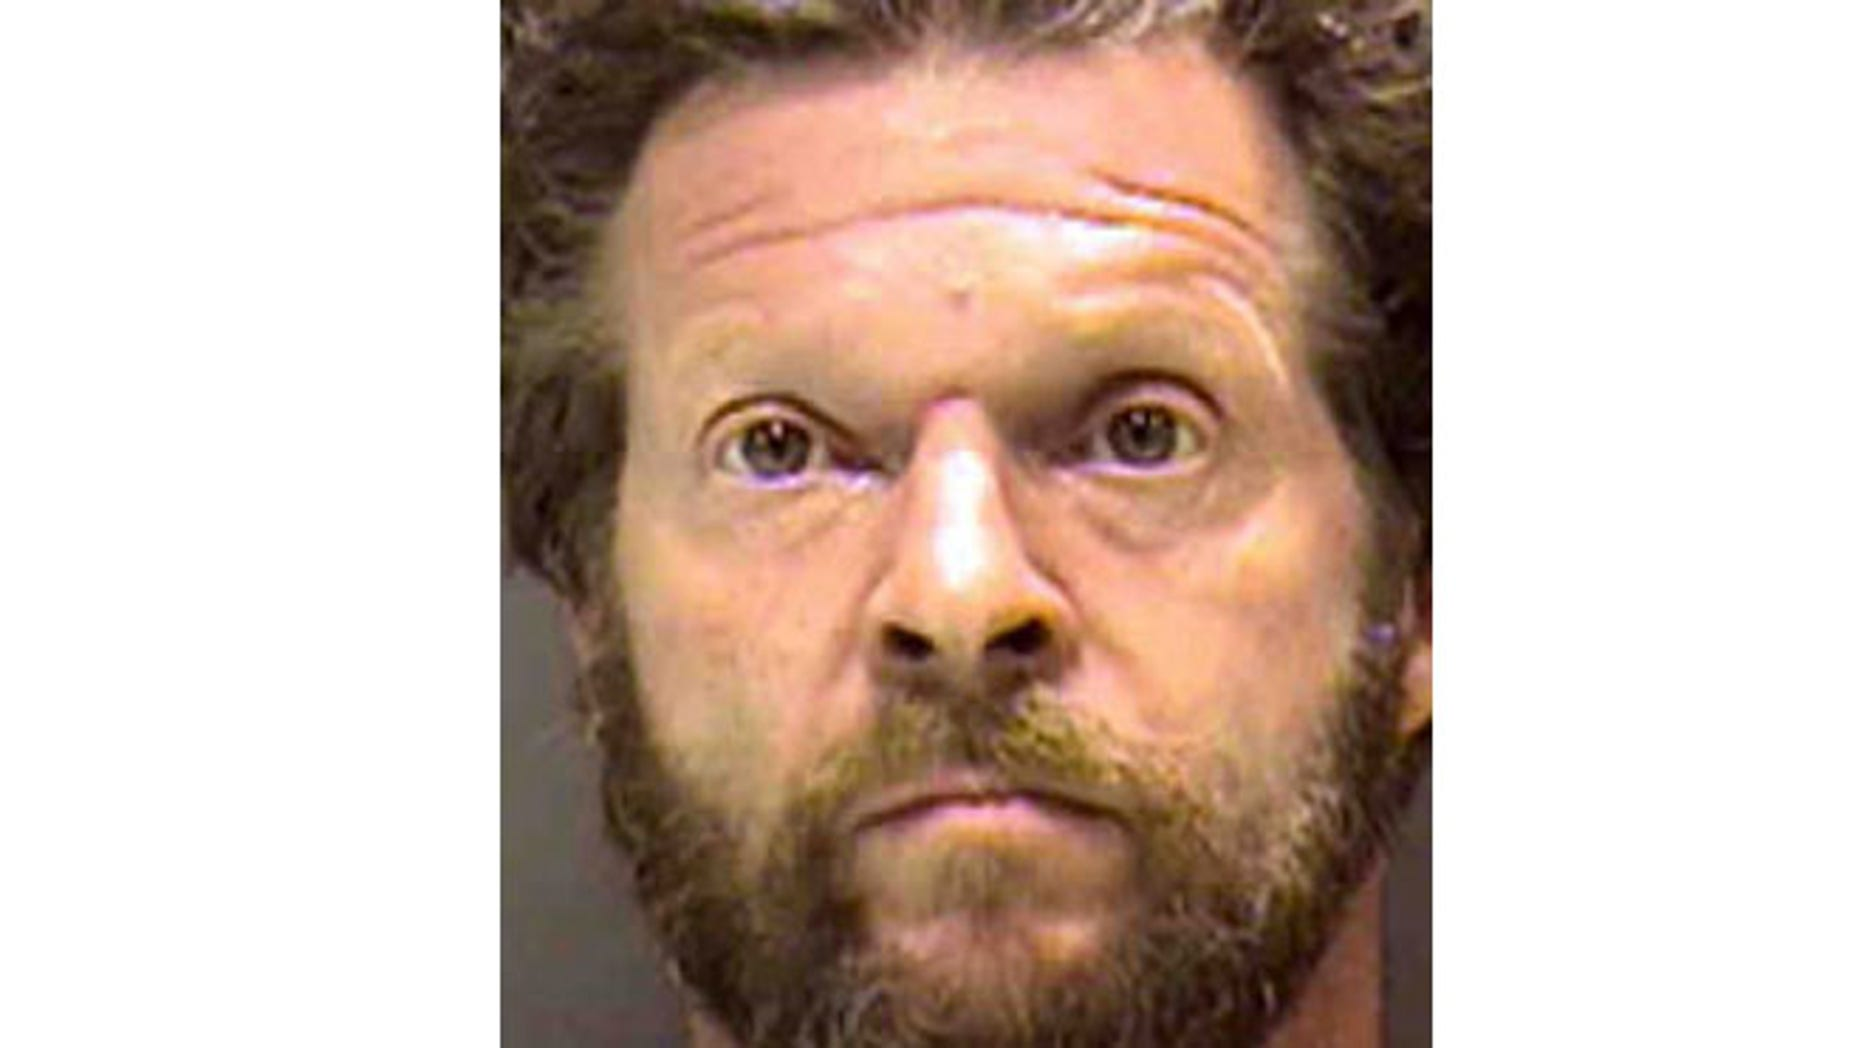 Kevin Koscielniak pleaded no contest to six charges, including animal cruelty and armed burglary.